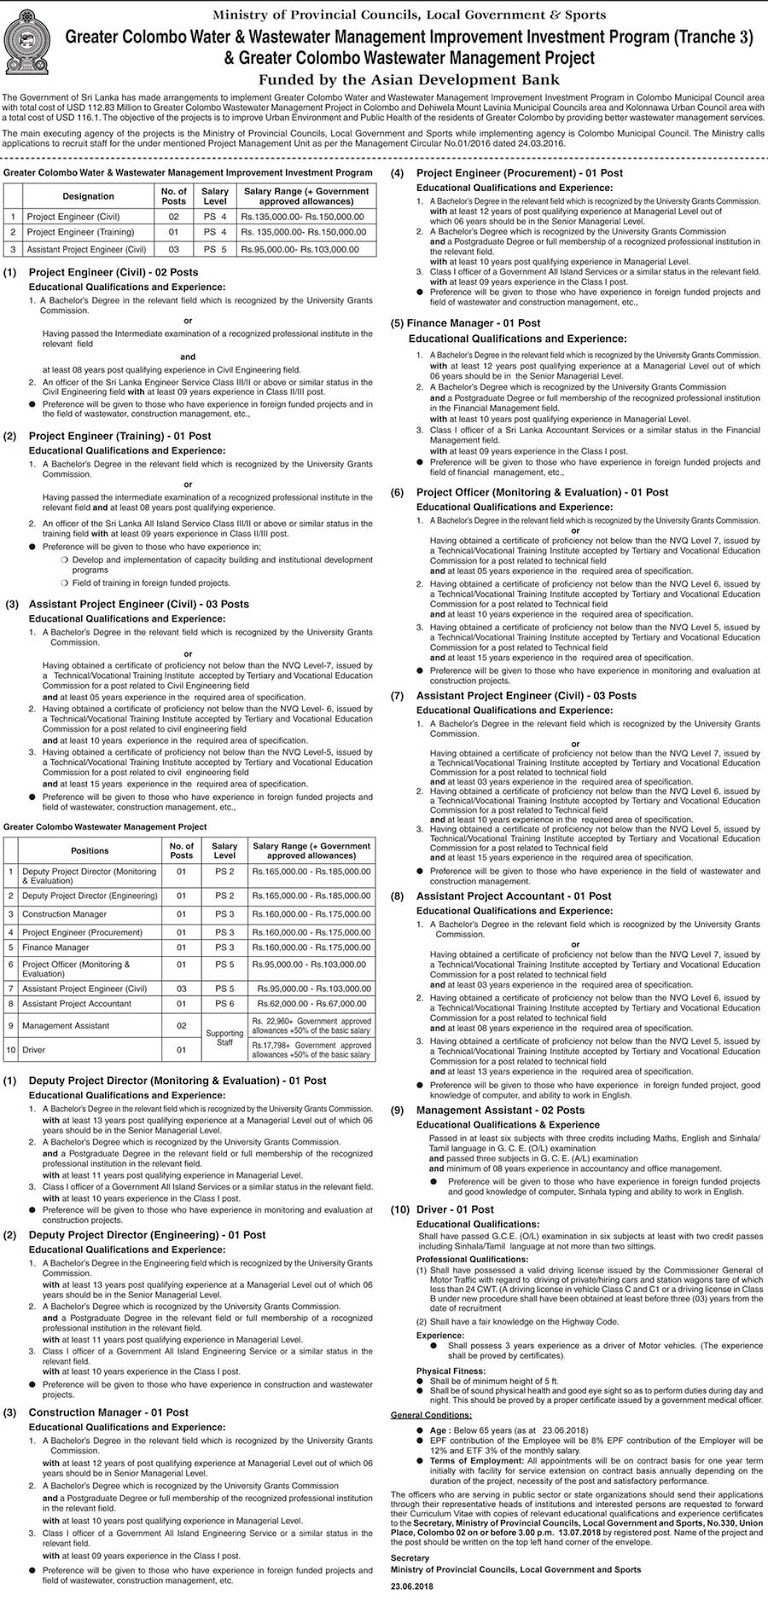 Vacancies at Ministry of Provincial Councils & Local Government and Sports